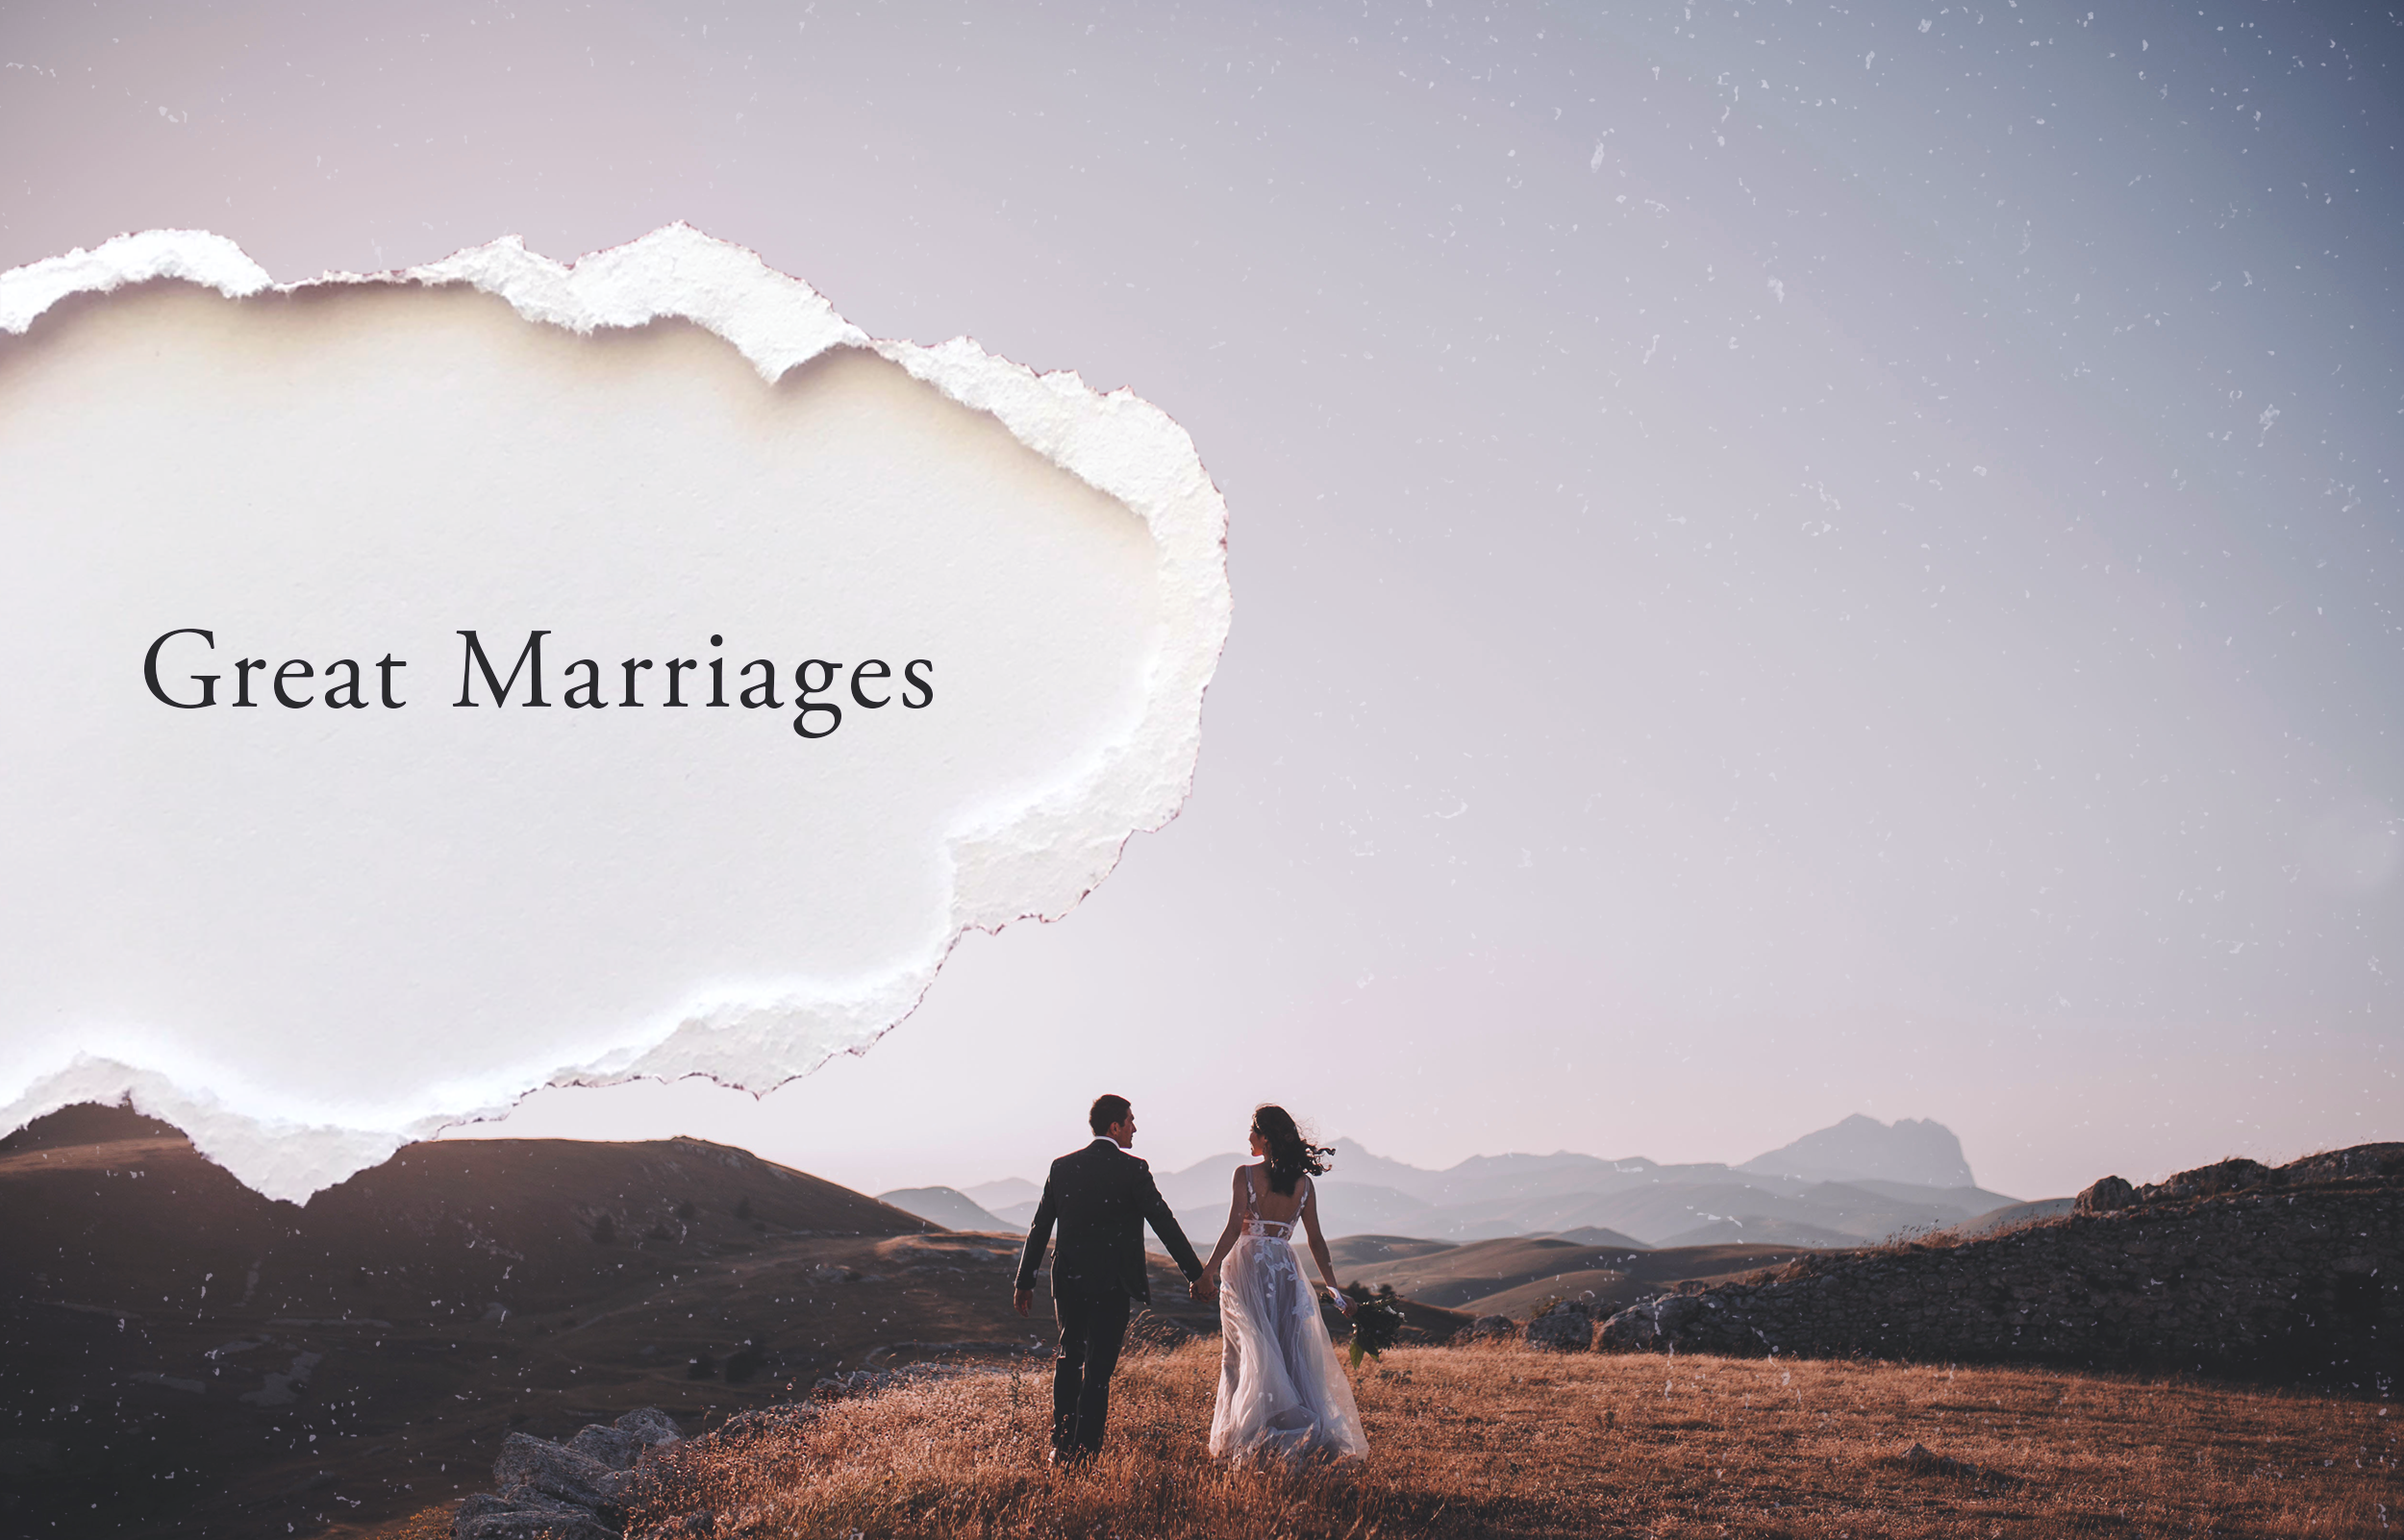 GreatMarriages-WebHomepageRotator (1)